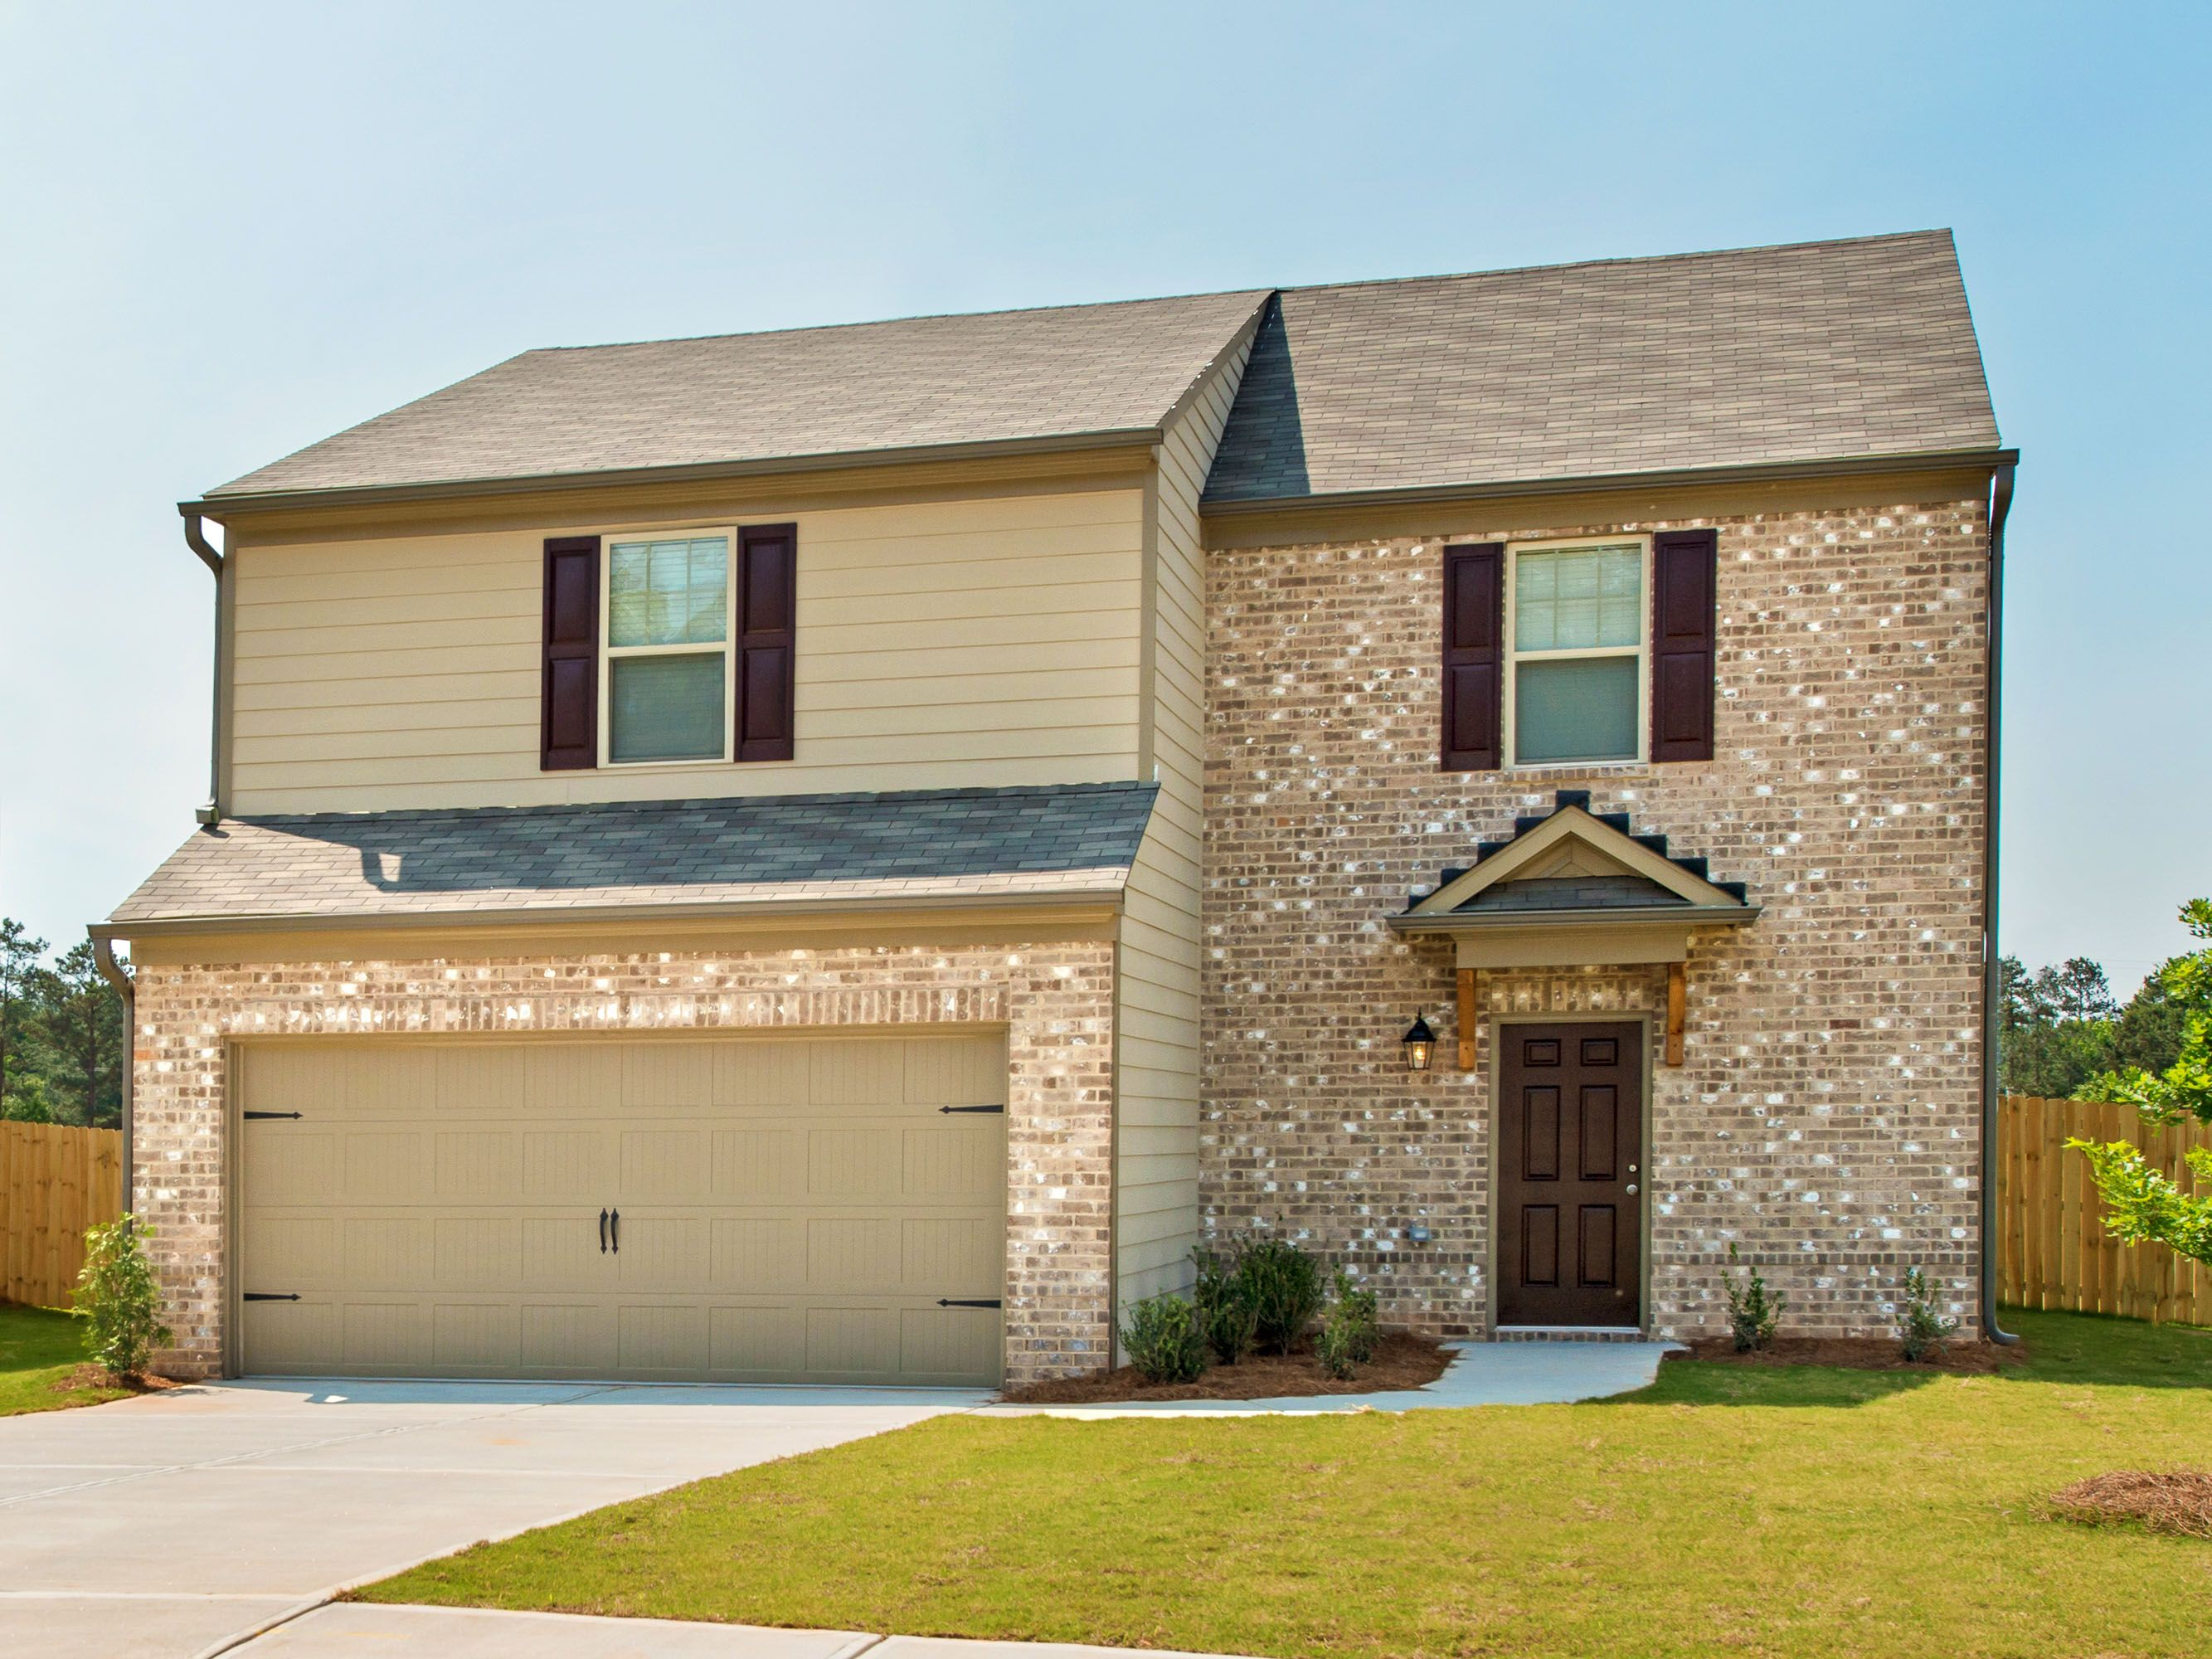 Highlands North in Dallas GA New Homes Floor Plans by LGI Homes